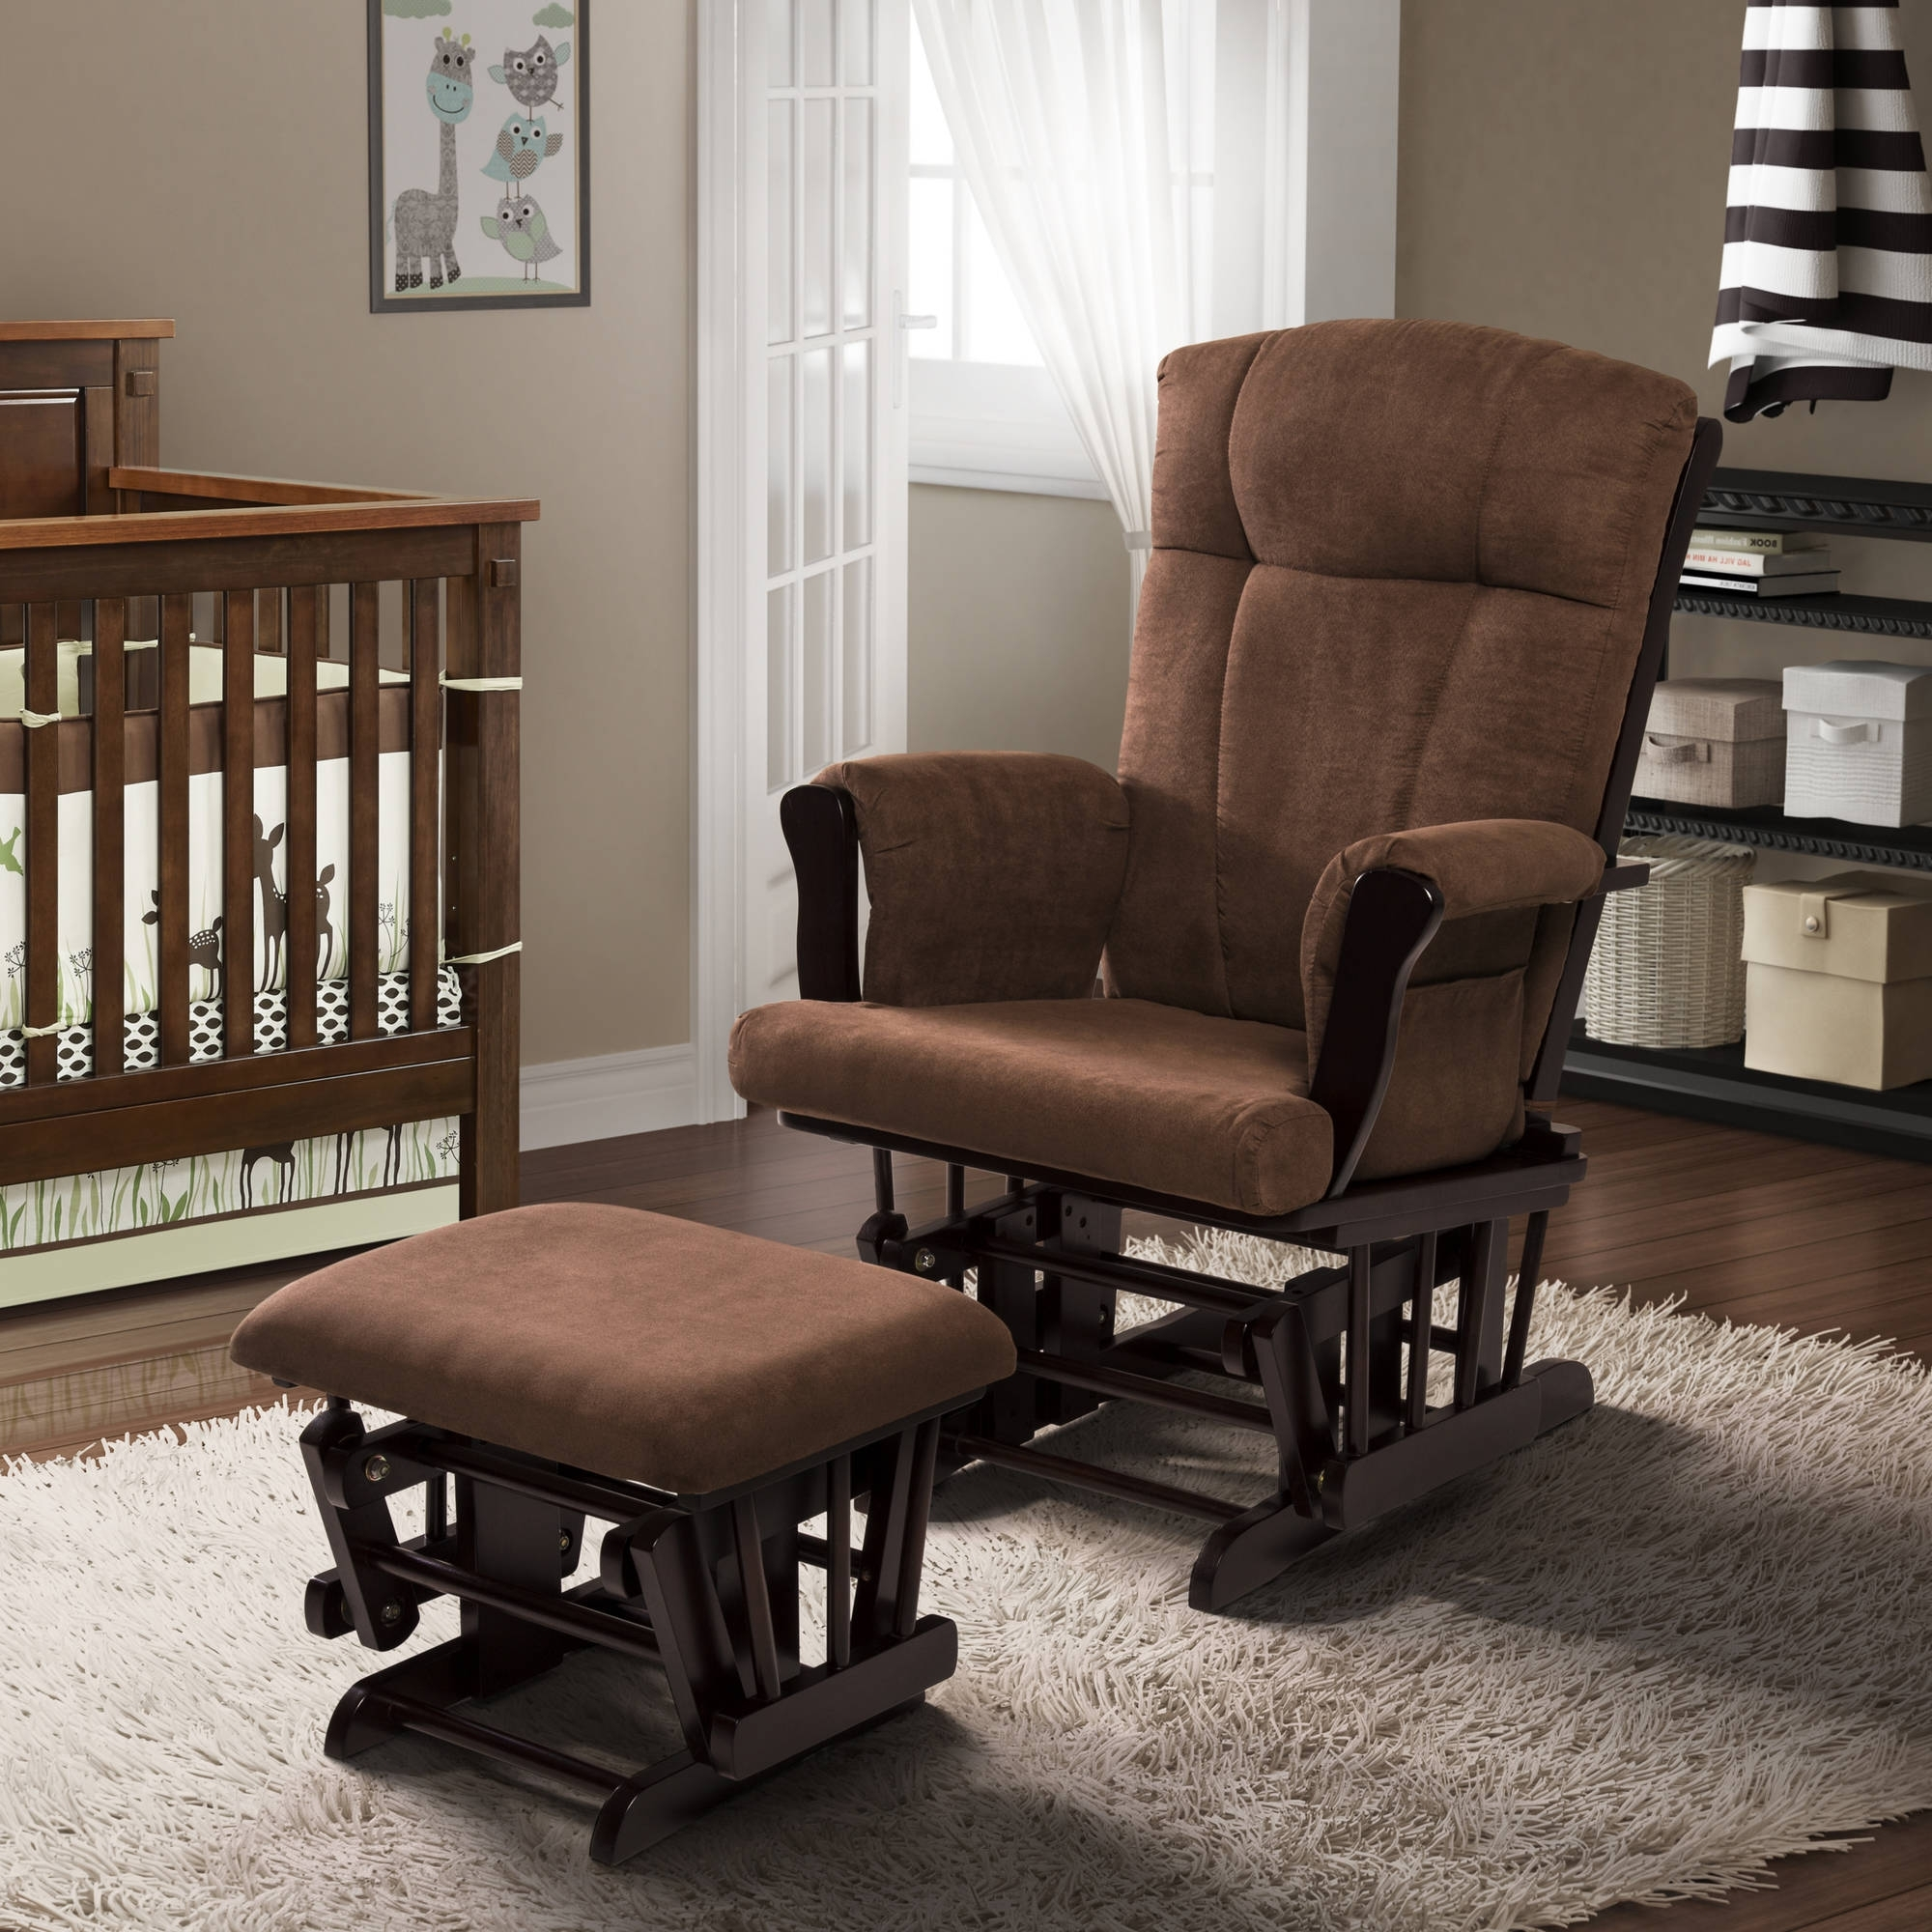 Well Known Rocking Chairs At Walmart Pertaining To Baby Relax Glider Rocker And Ottoman Espresso With Chocolate (View 15 of 15)